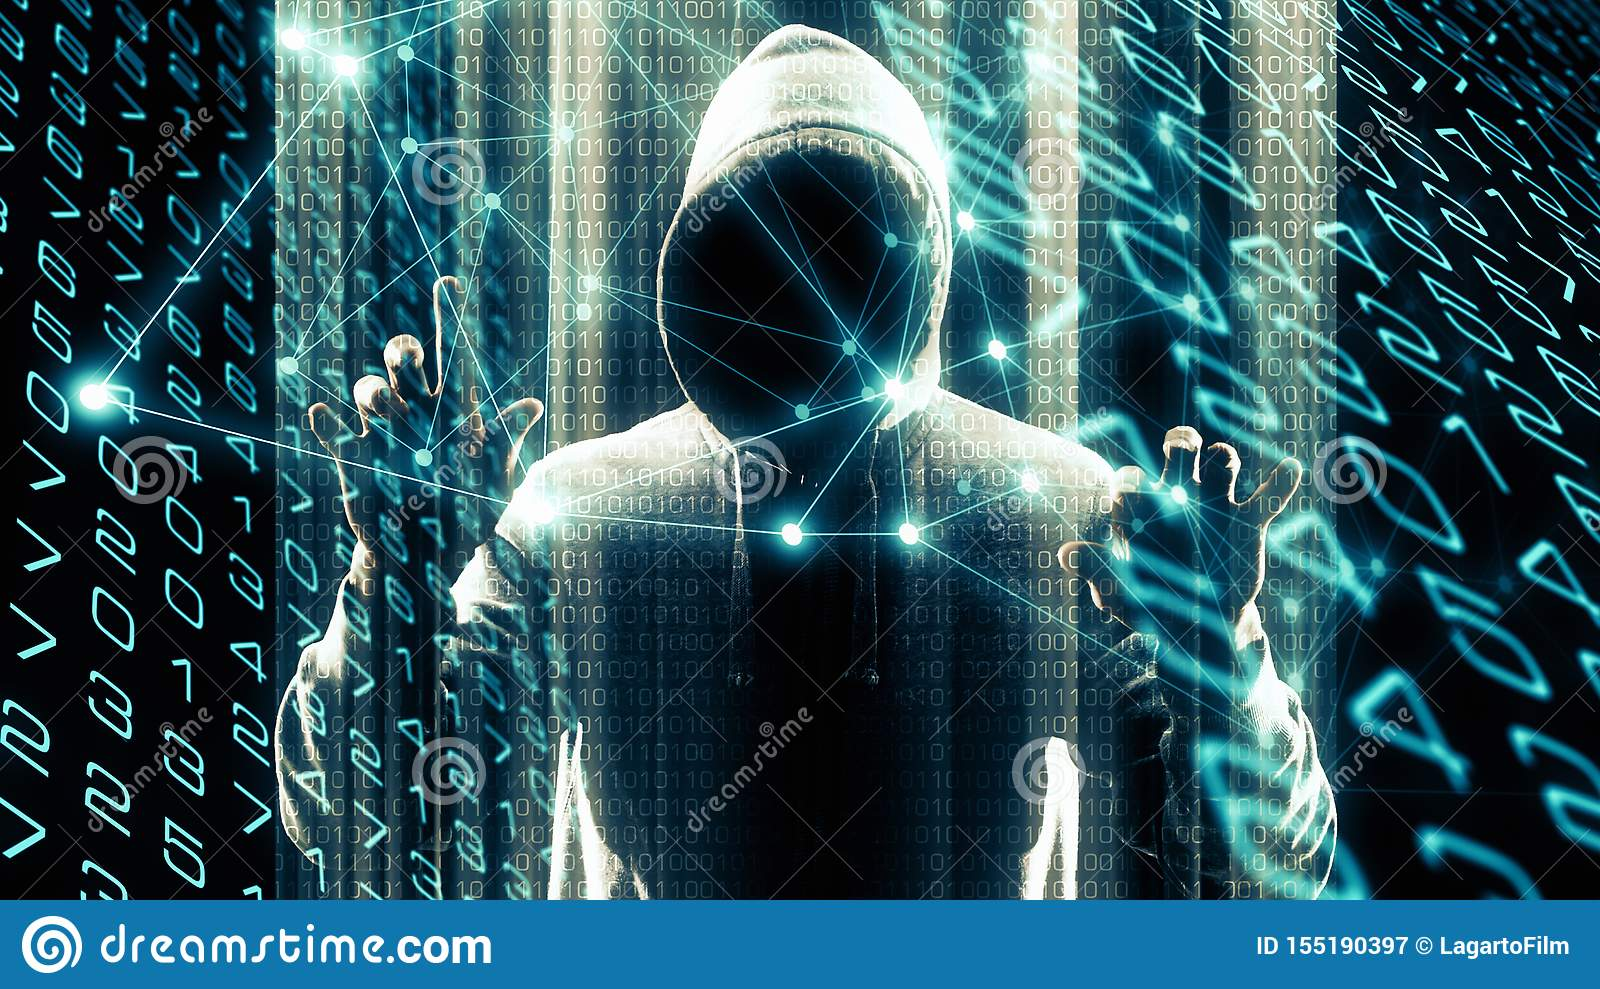 Cybernetic Data Analytics Computer Science Future Stock Image Image Of Futuristic Digital 155190397